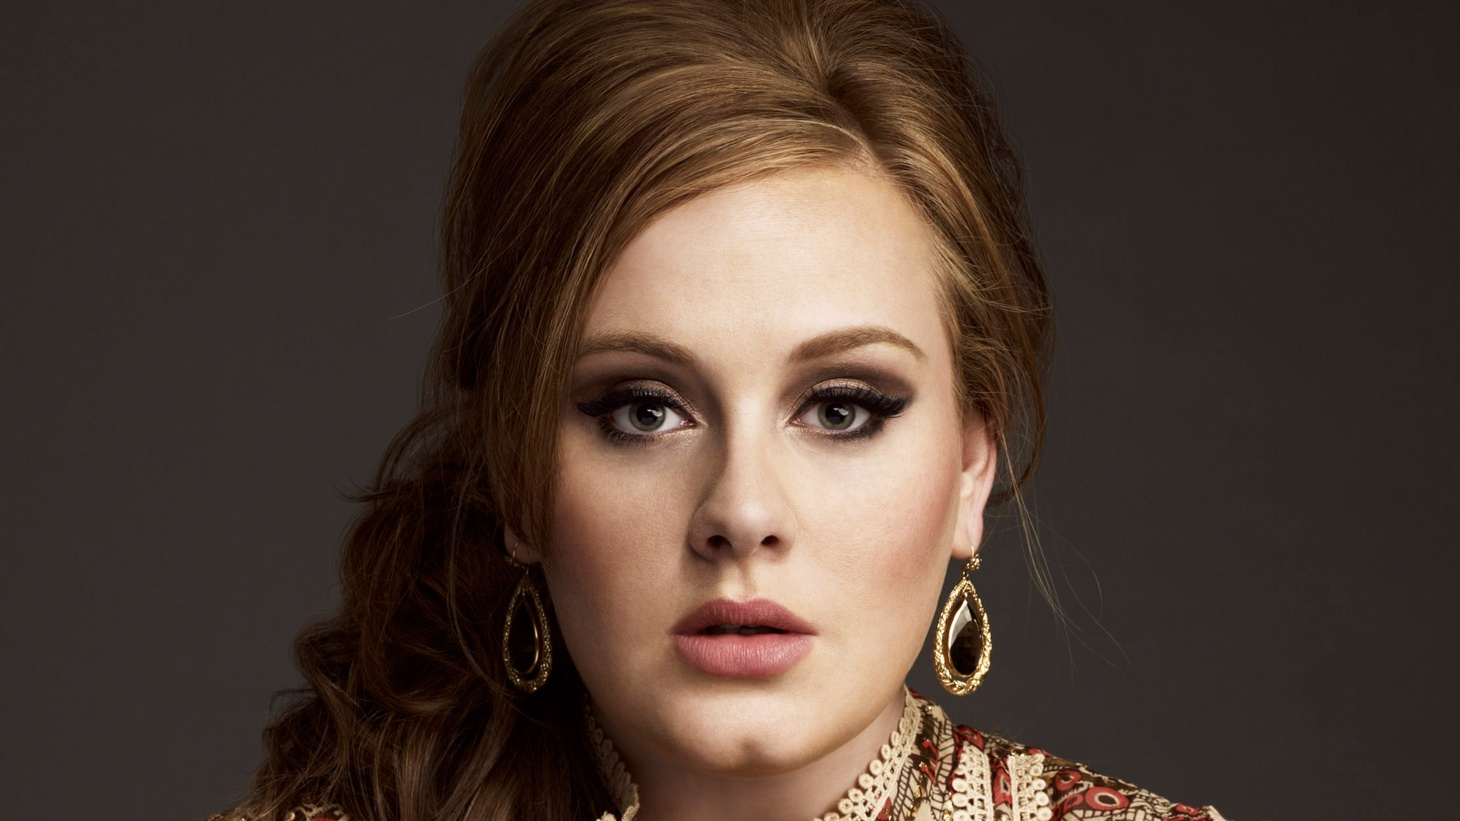 Adele's sophomore release 21 catapulted her to stardom. She visited our studio for a special session.